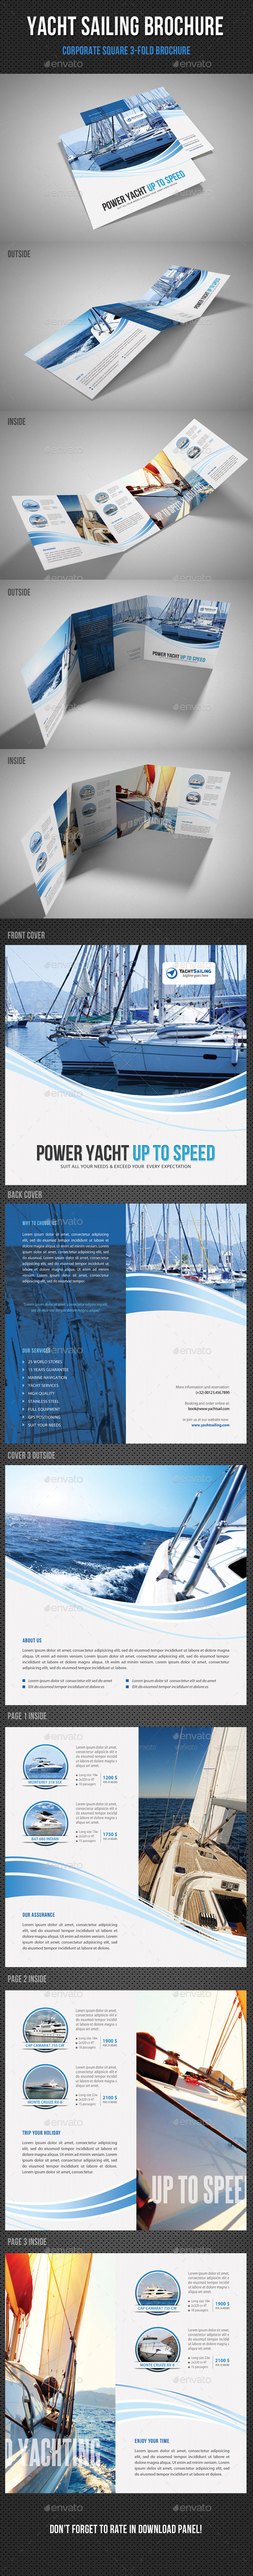 Yacht Boat Sailing Square 3-Fold Brochure 03 - Corporate Brochures